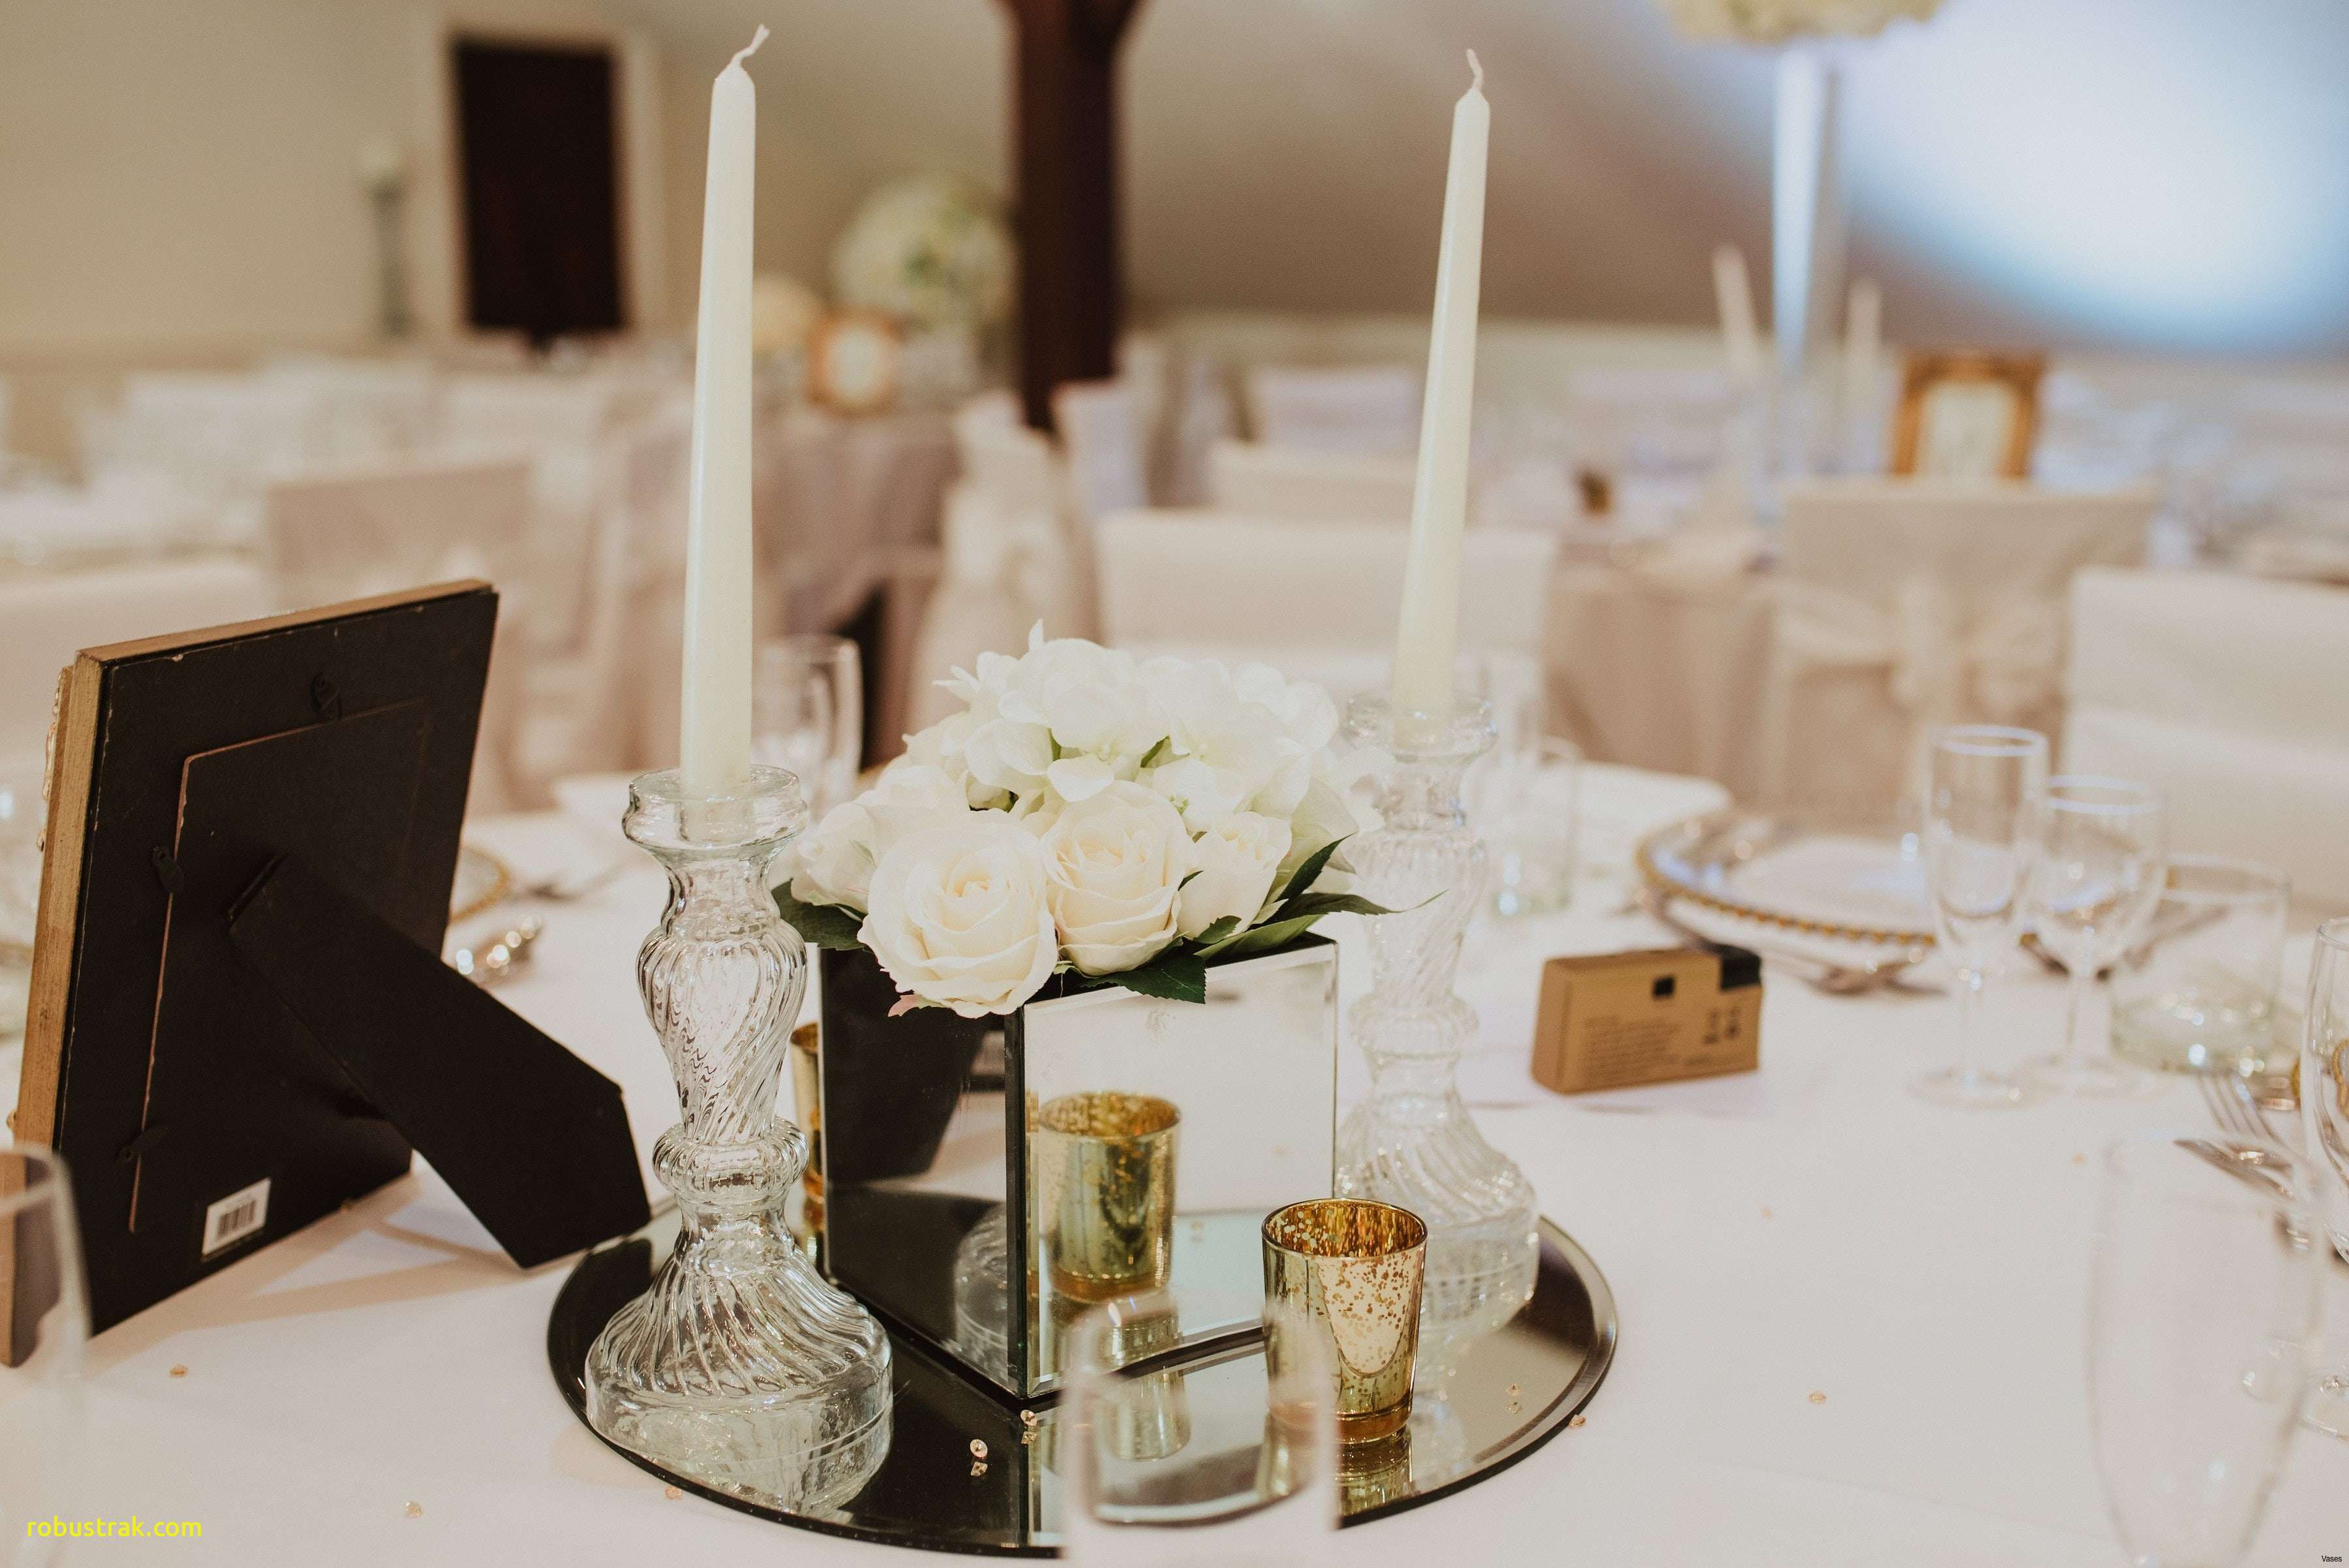 decorative square vases of inspirational wedding party table decoration ideas home design ideas in wedding reception centerpiece ideas ideas cheap wedding reception mirrored square vase 3h vases mirror weddings table